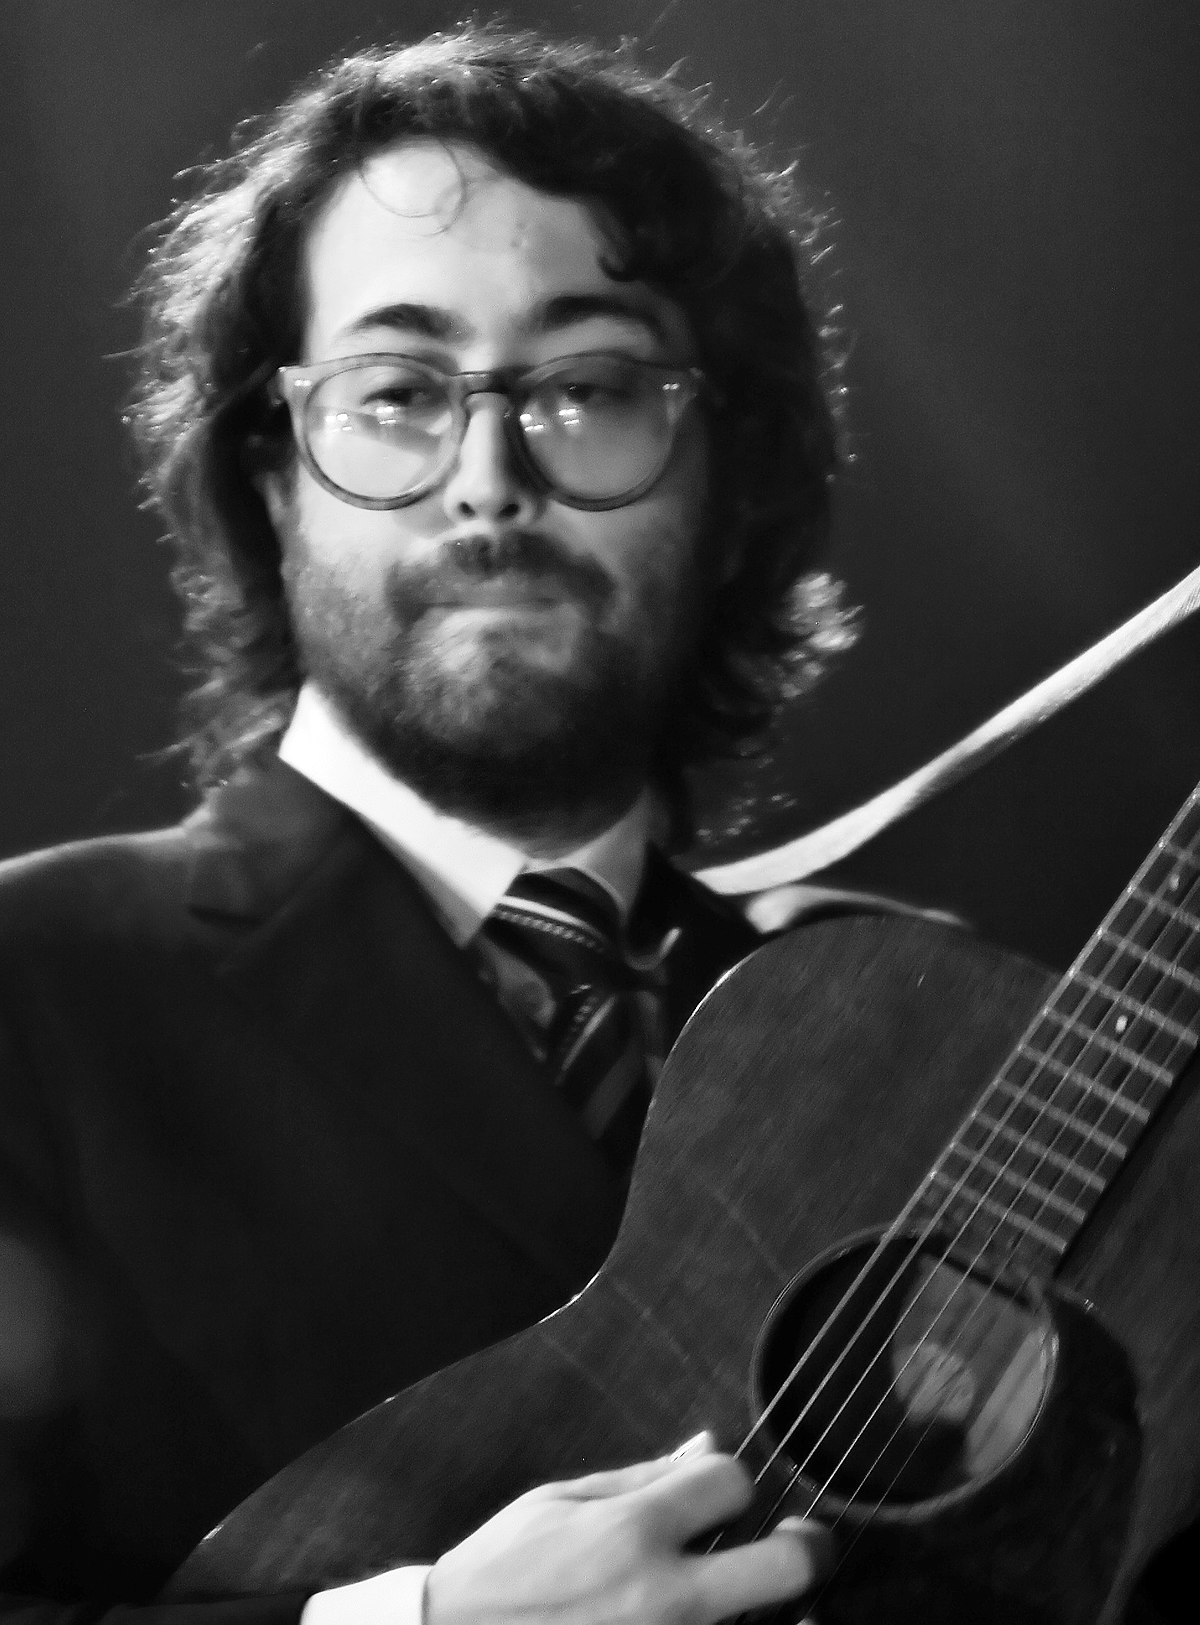 sean lennon � wikipedia